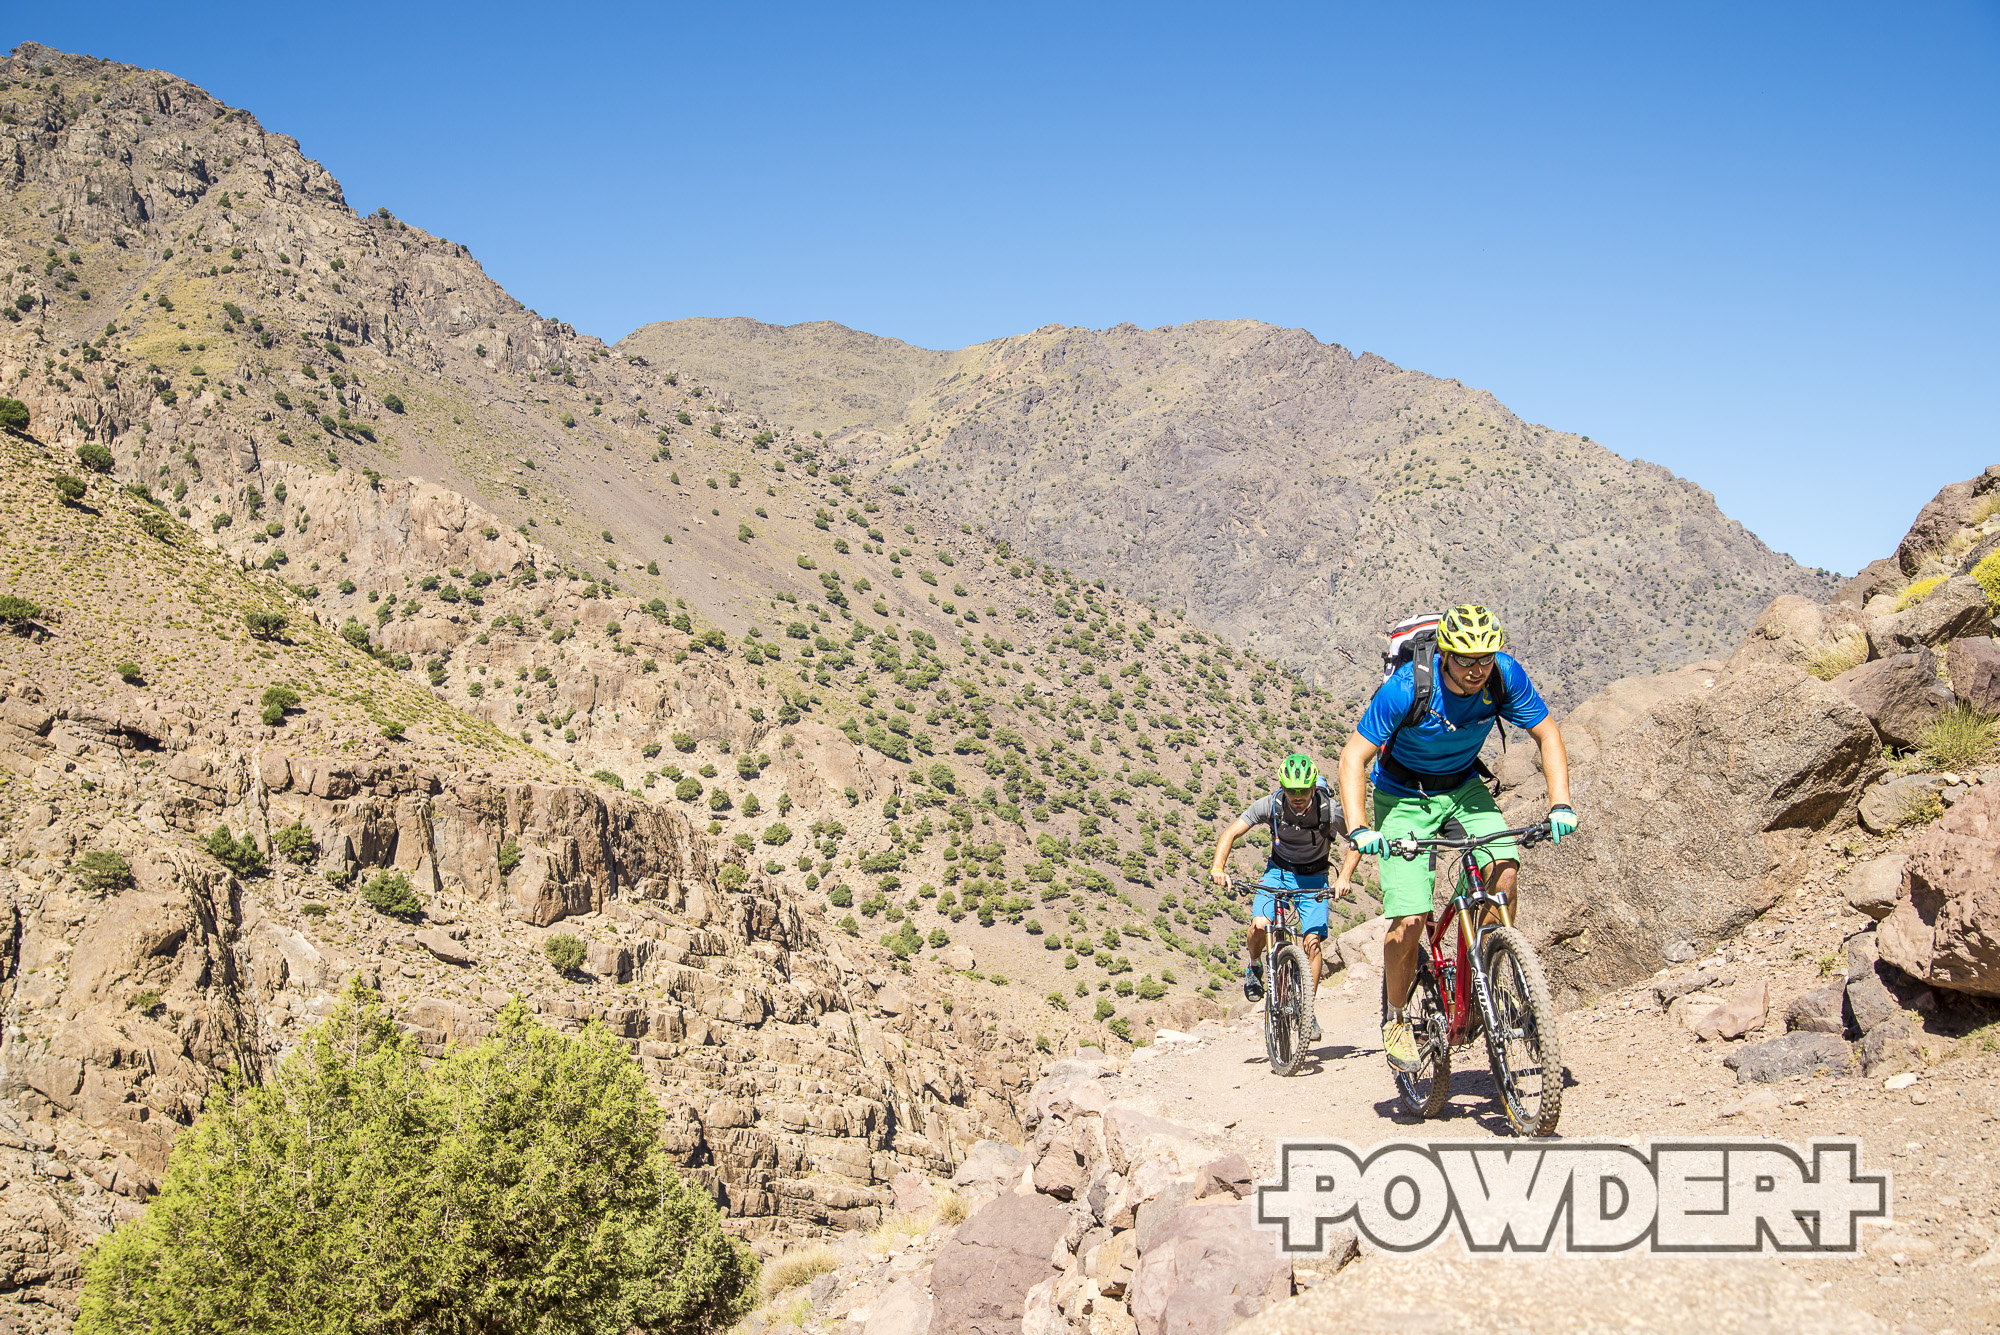 Bike, Mountainbike, Enduro, Marokko, Toubkal, Atlas, biken, Bike Tour, Atlasumrundung, morocco, Radon, Marmot, 5.ten, evoc, imlil, toubkal-tour, marrakech, essaouira, bike marokko, geführte tour, bergspechte